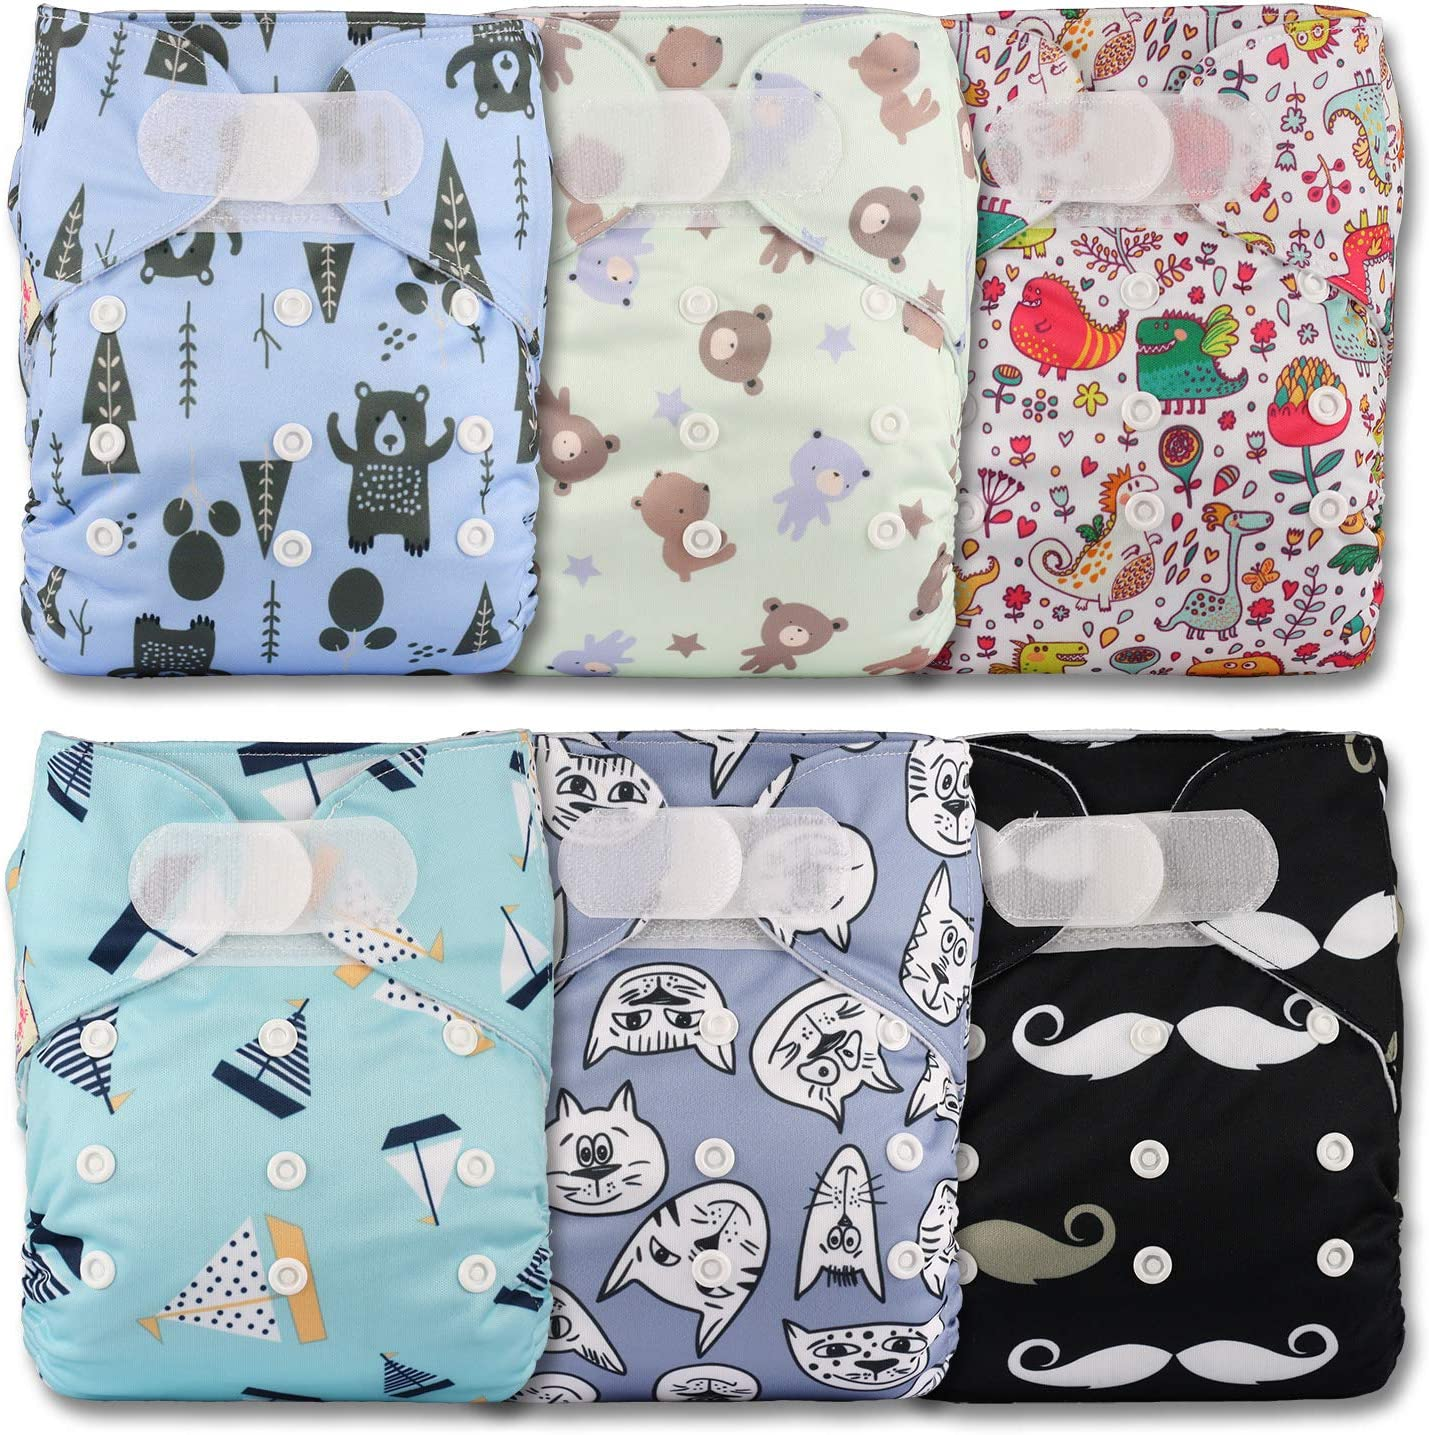 Patterns 608 Littles /& Bloomz with 6 Bamboo Inserts Set of 6 Fastener: Hook-Loop Reusable Pocket Cloth Nappy